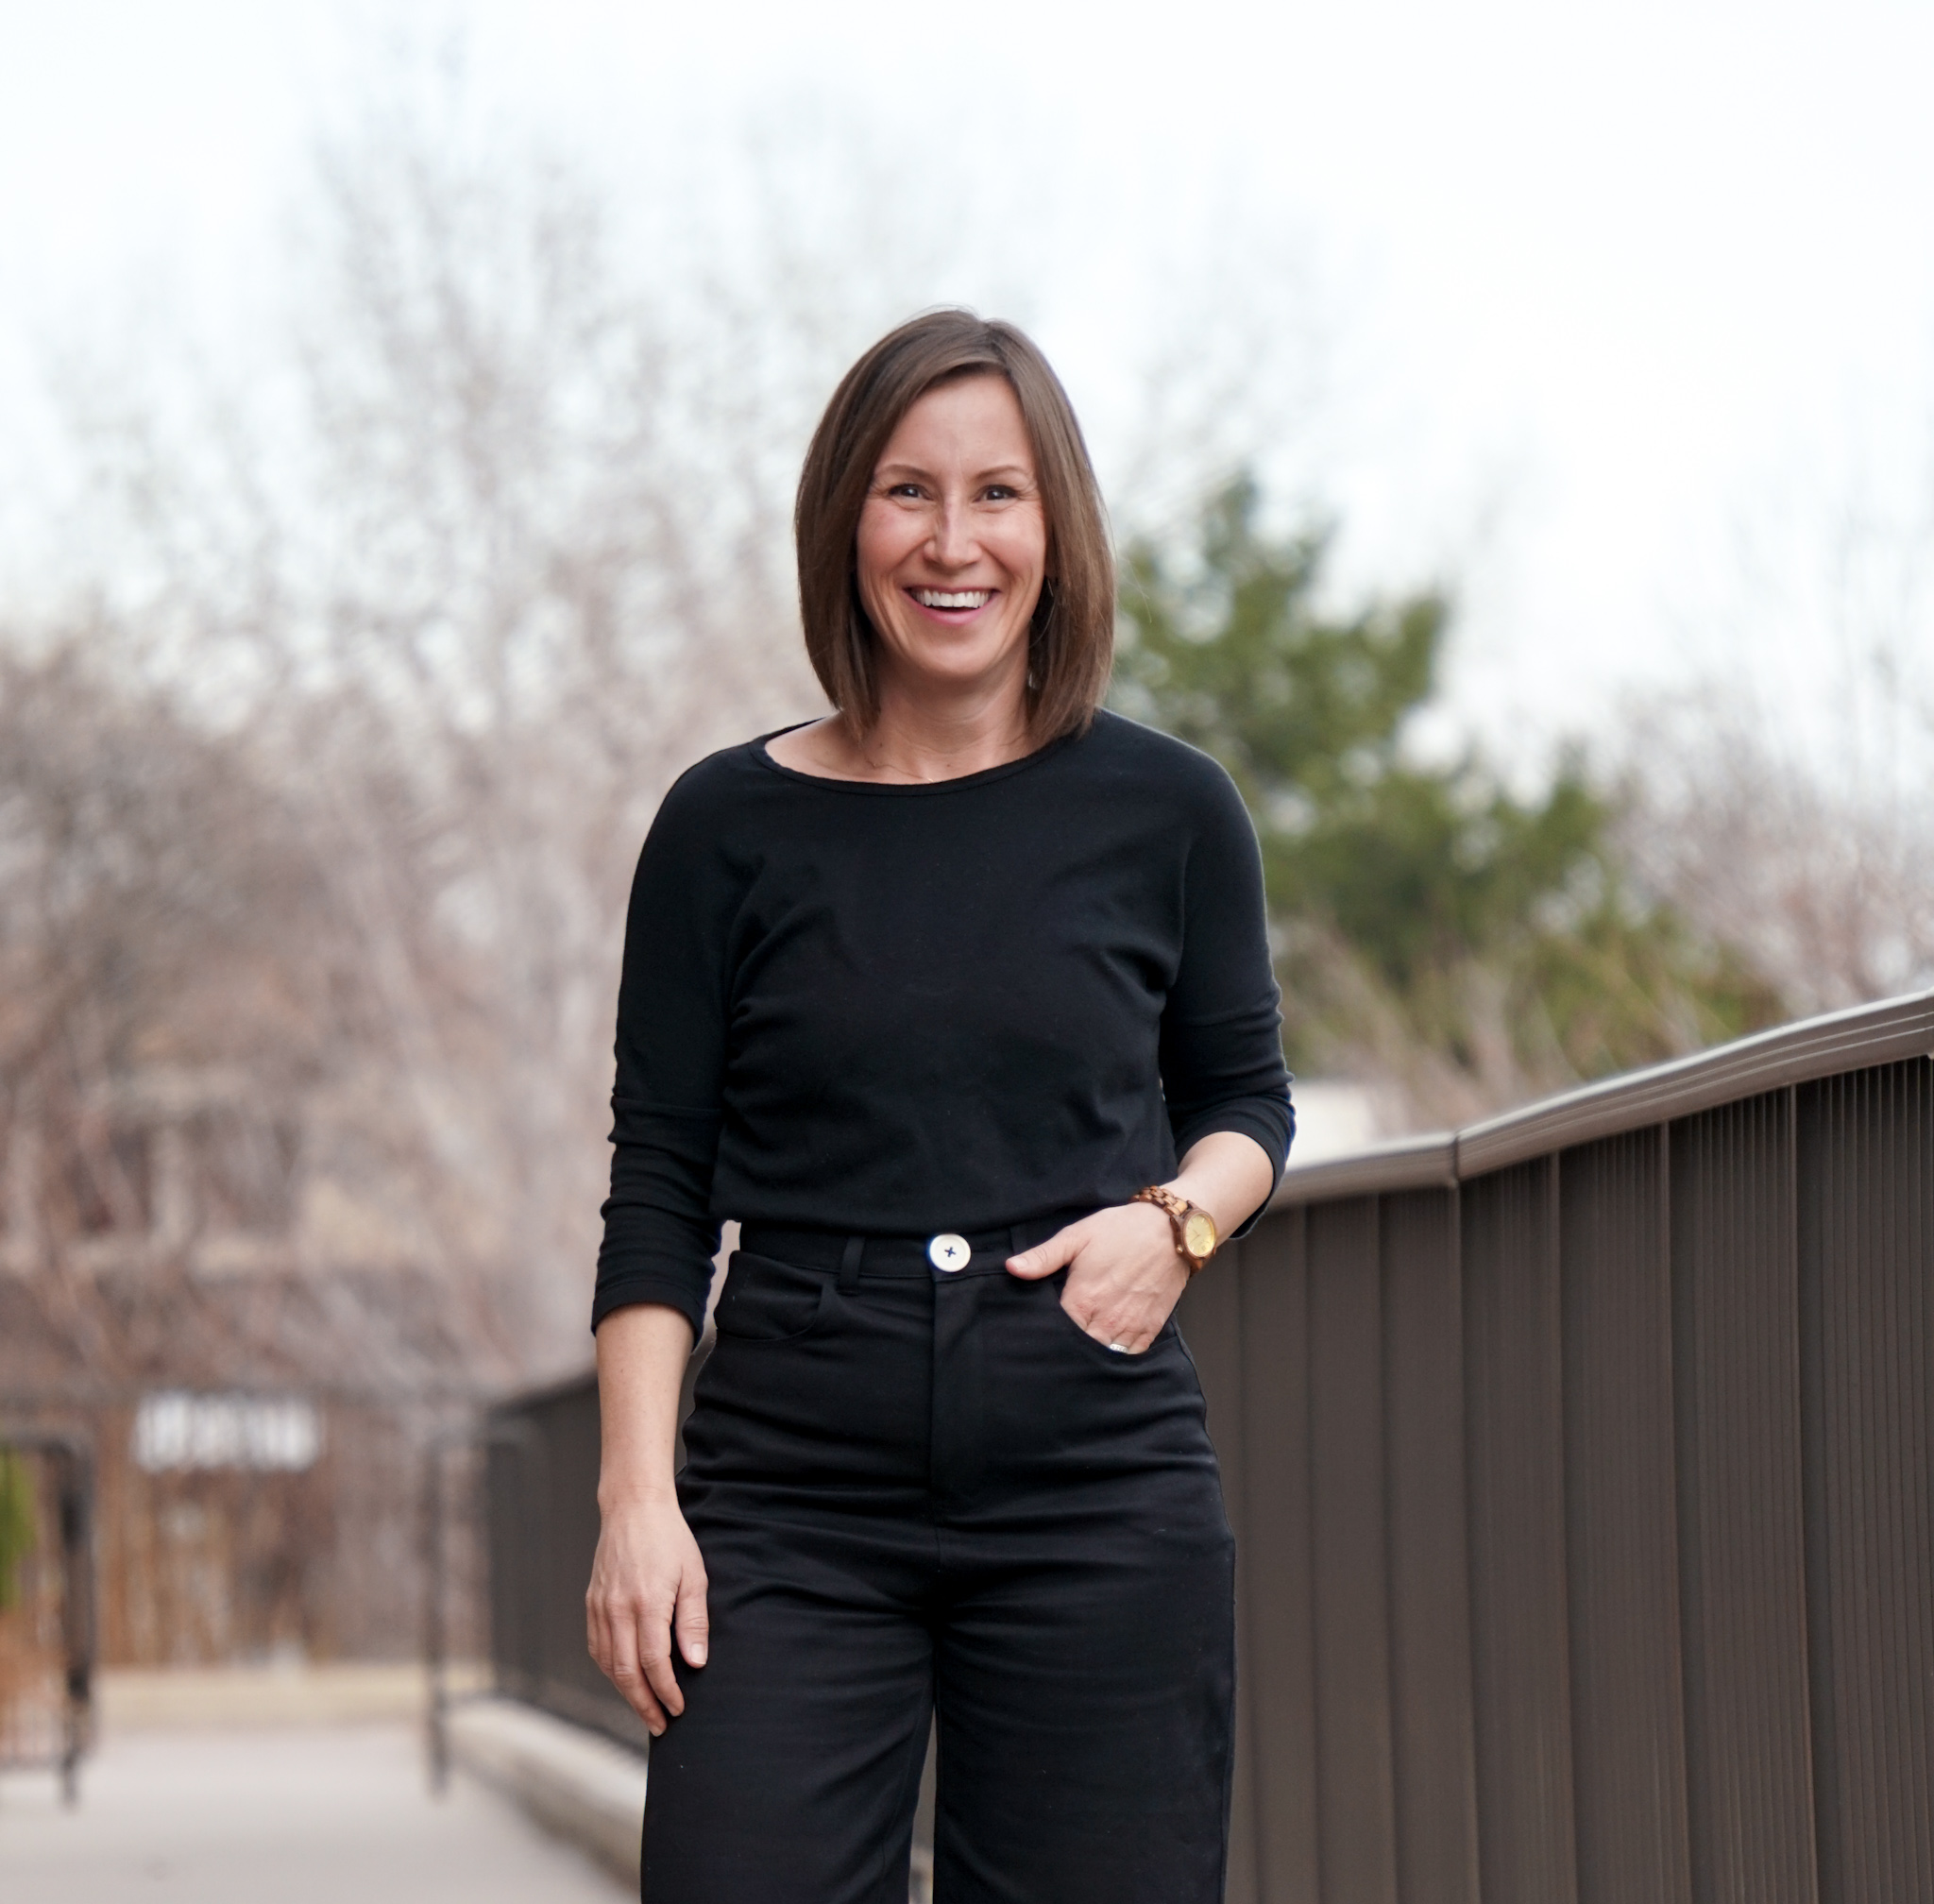 All Black Outfit Inspiration // Week Of Outfits With Paige Marchi On The Good Trade